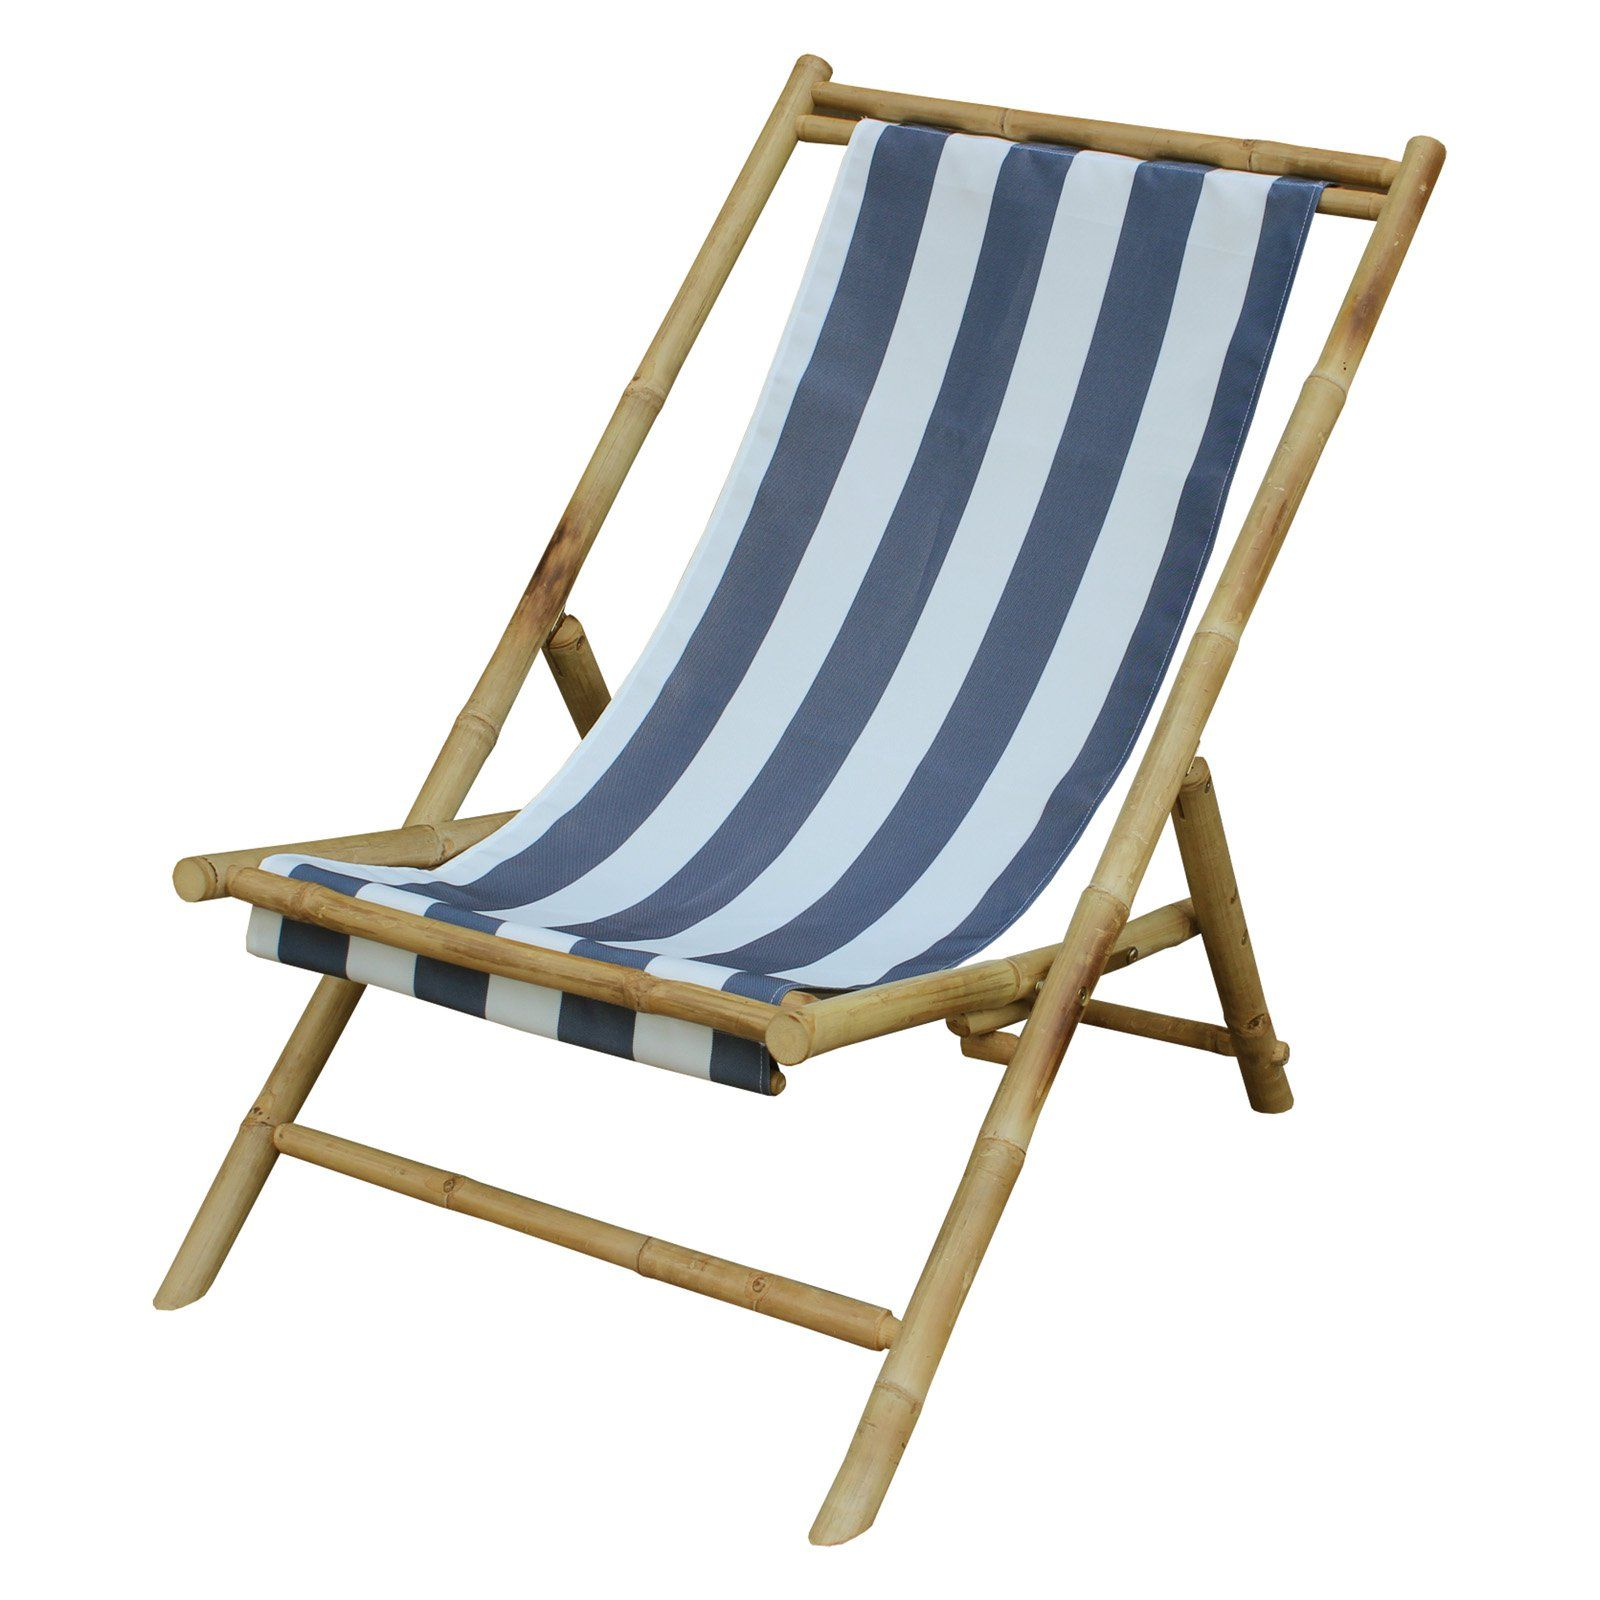 Excellent Outdoor Statra Folding Bamboo Canvas Relax Sling Chair Blue Onthecornerstone Fun Painted Chair Ideas Images Onthecornerstoneorg